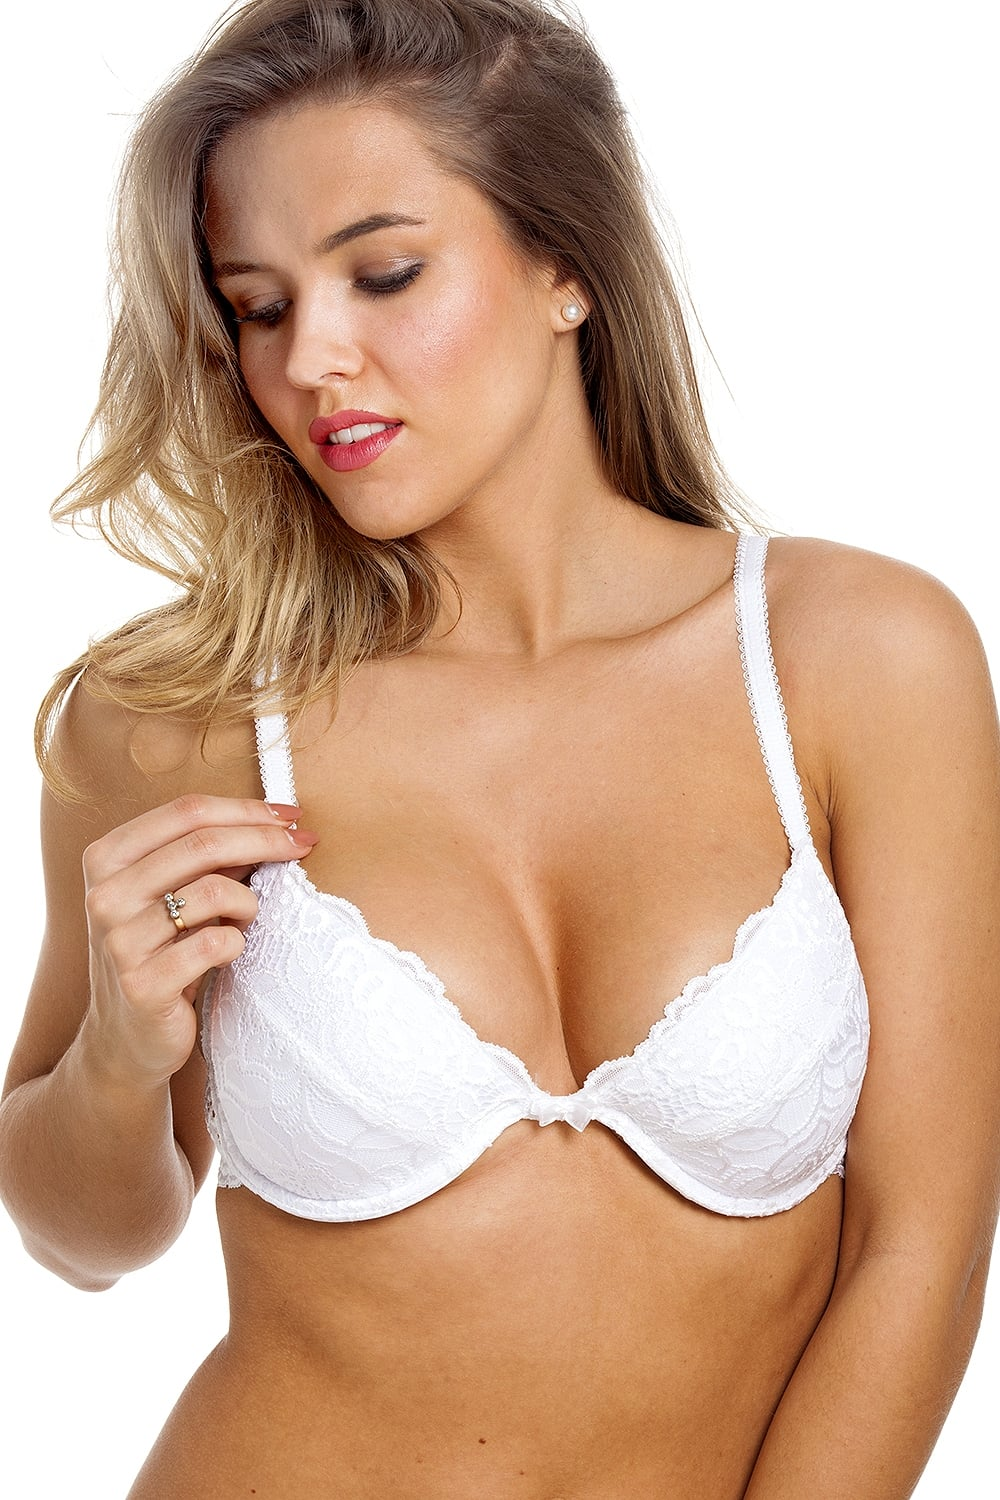 a88c90e02cc5 Camille Womens White Floral Lace Push Up Plunge Padded Underwired Bra